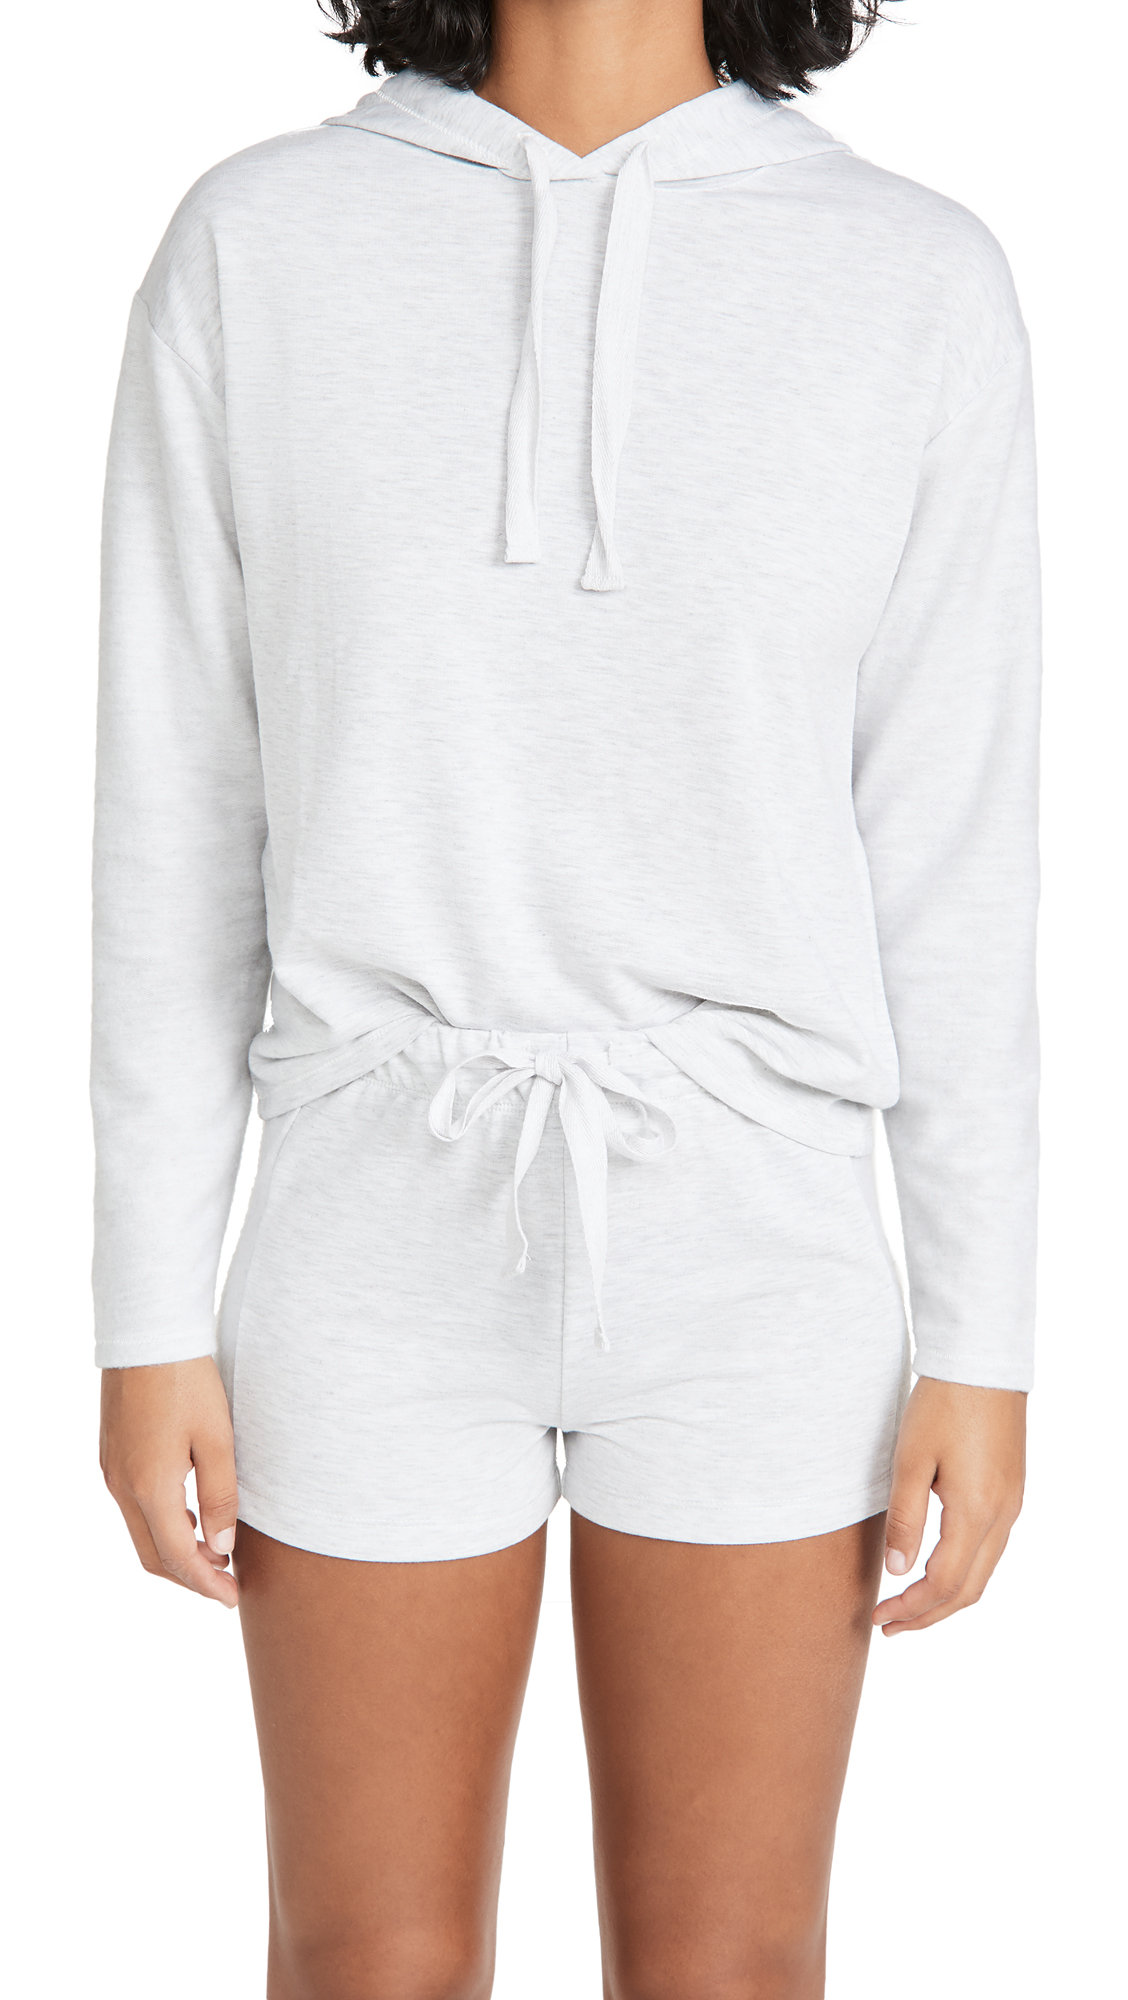 Emerson Road Brushed Butter Sleep Hoodie & Shorts Set